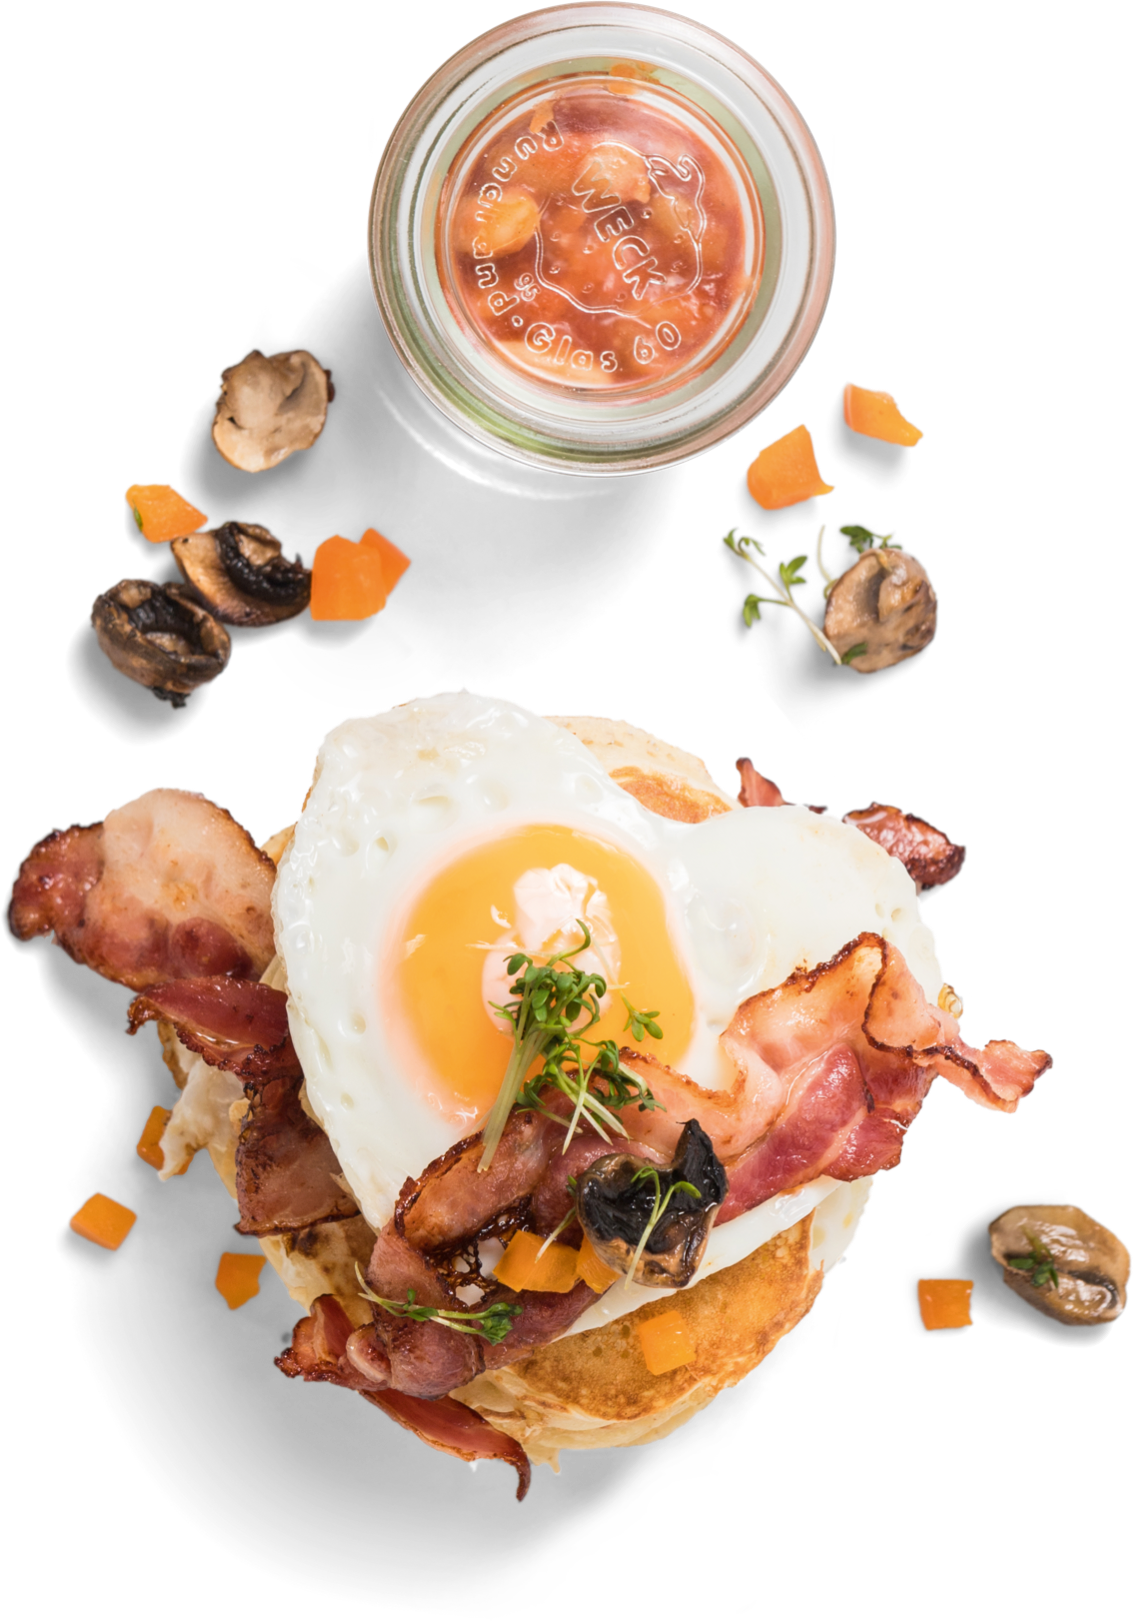 heart-shaped fried egg on pancakes with bacon and baked beans in a small jar